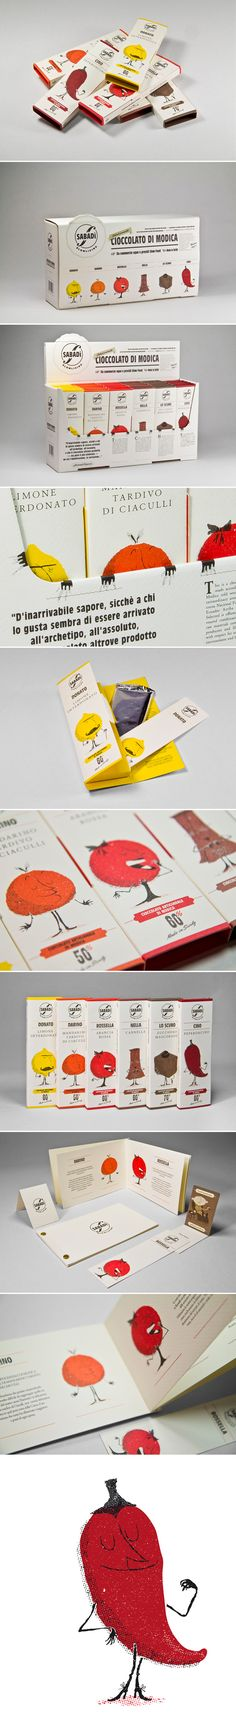 Chocolat Sabadi / designed by Happycentro. #packaging